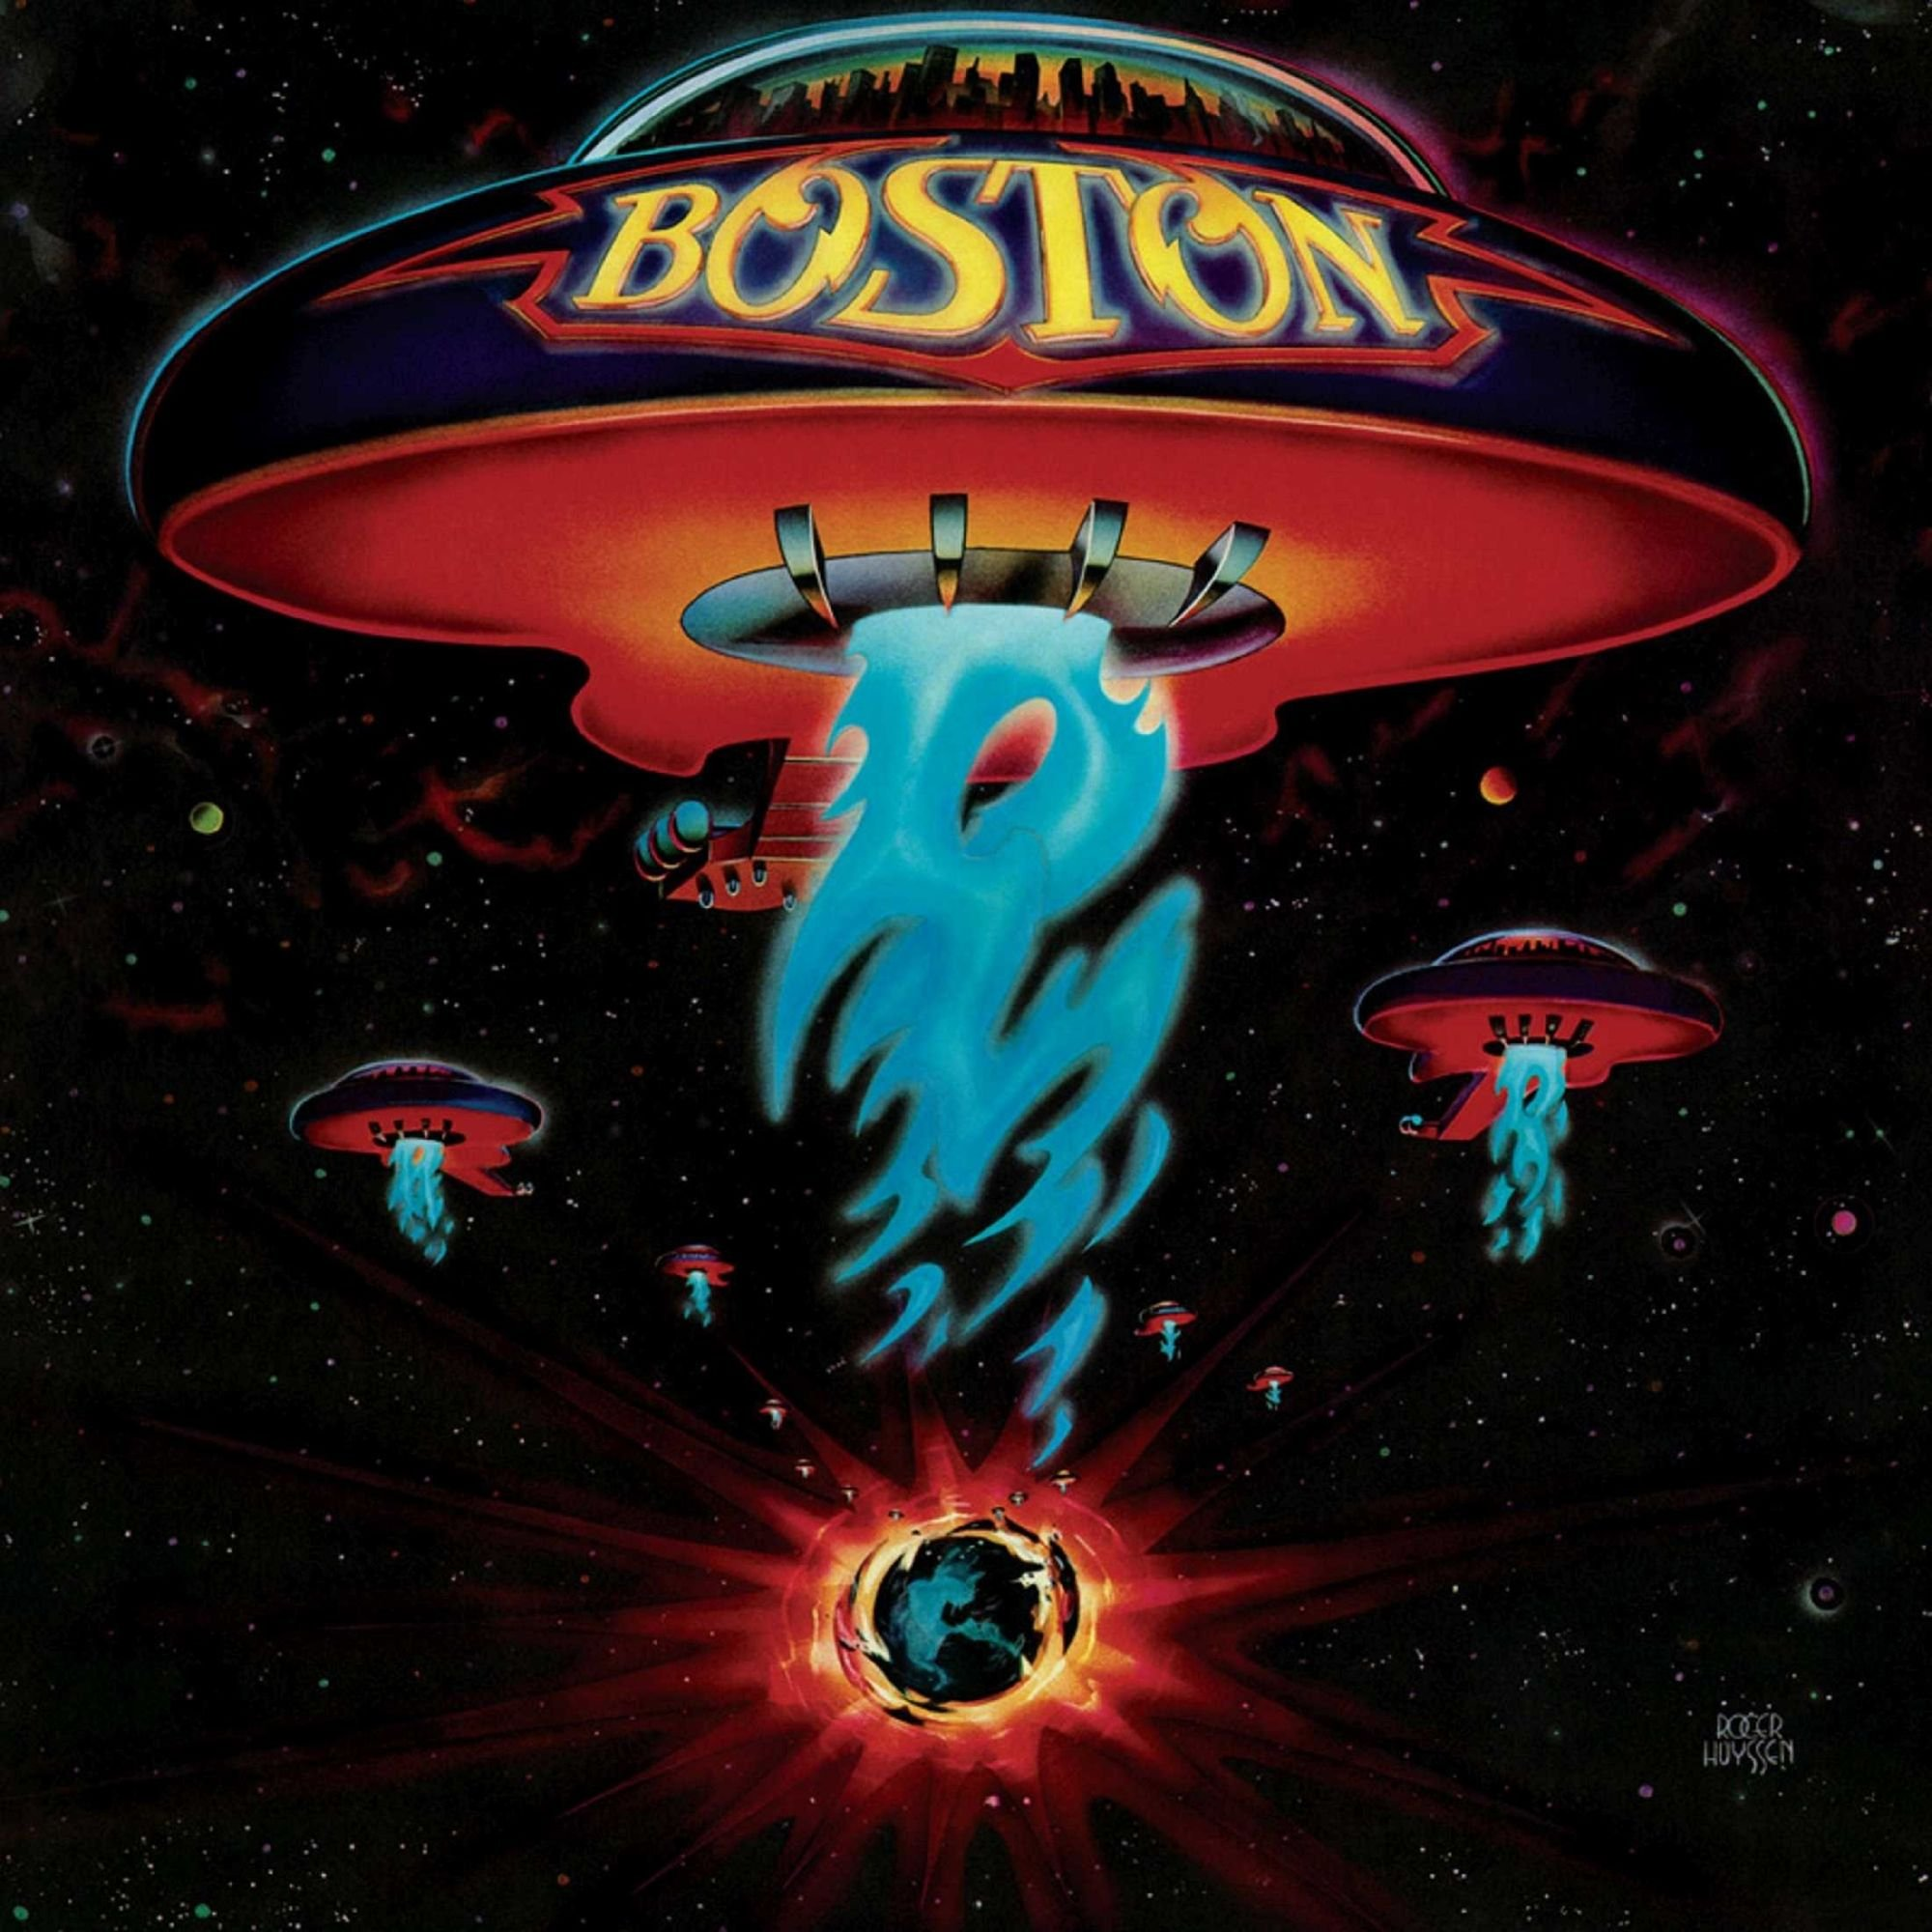 Vinilo : Boston - Boston (Red, Limited Edition, 180 Gram Vinyl, Gatefold LP Jacket, Colored Vinyl)